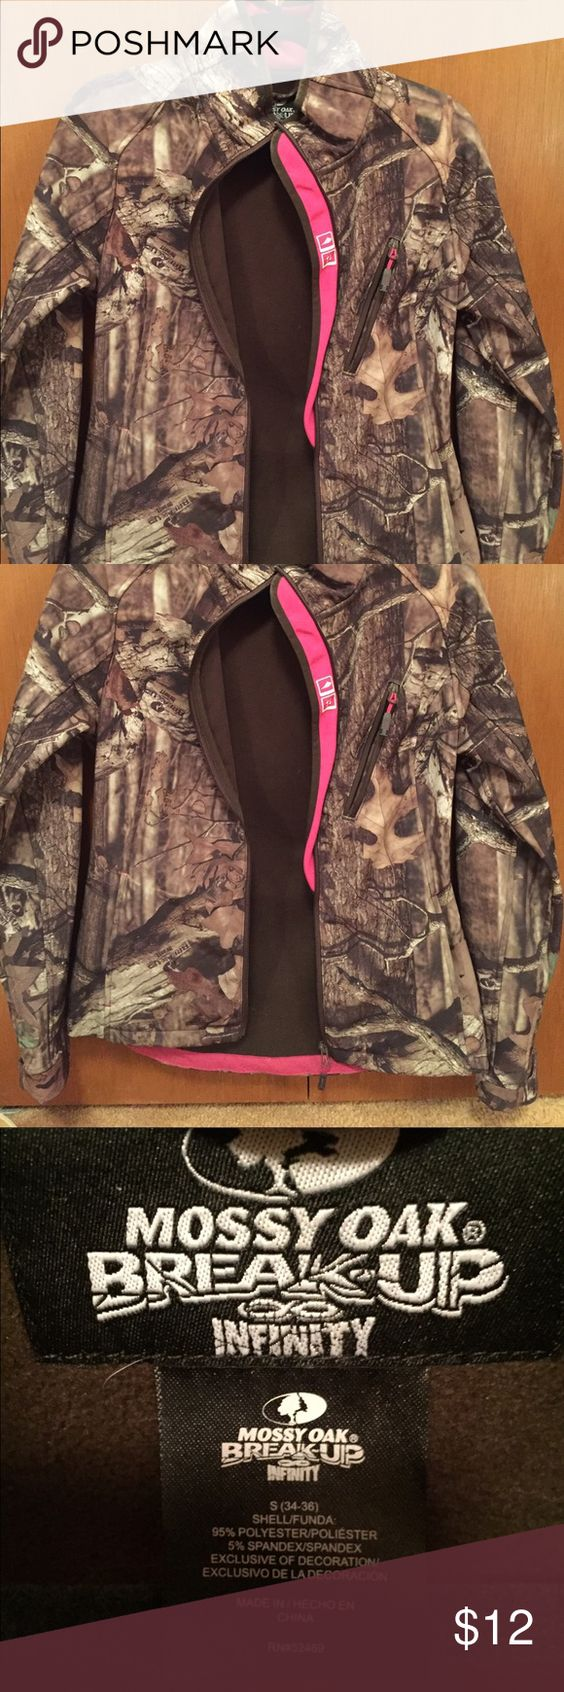 Hunting Jacket Only worn once, great camouflage jacket. Has a nice fitted look for women. mossy oak Jackets & Coats